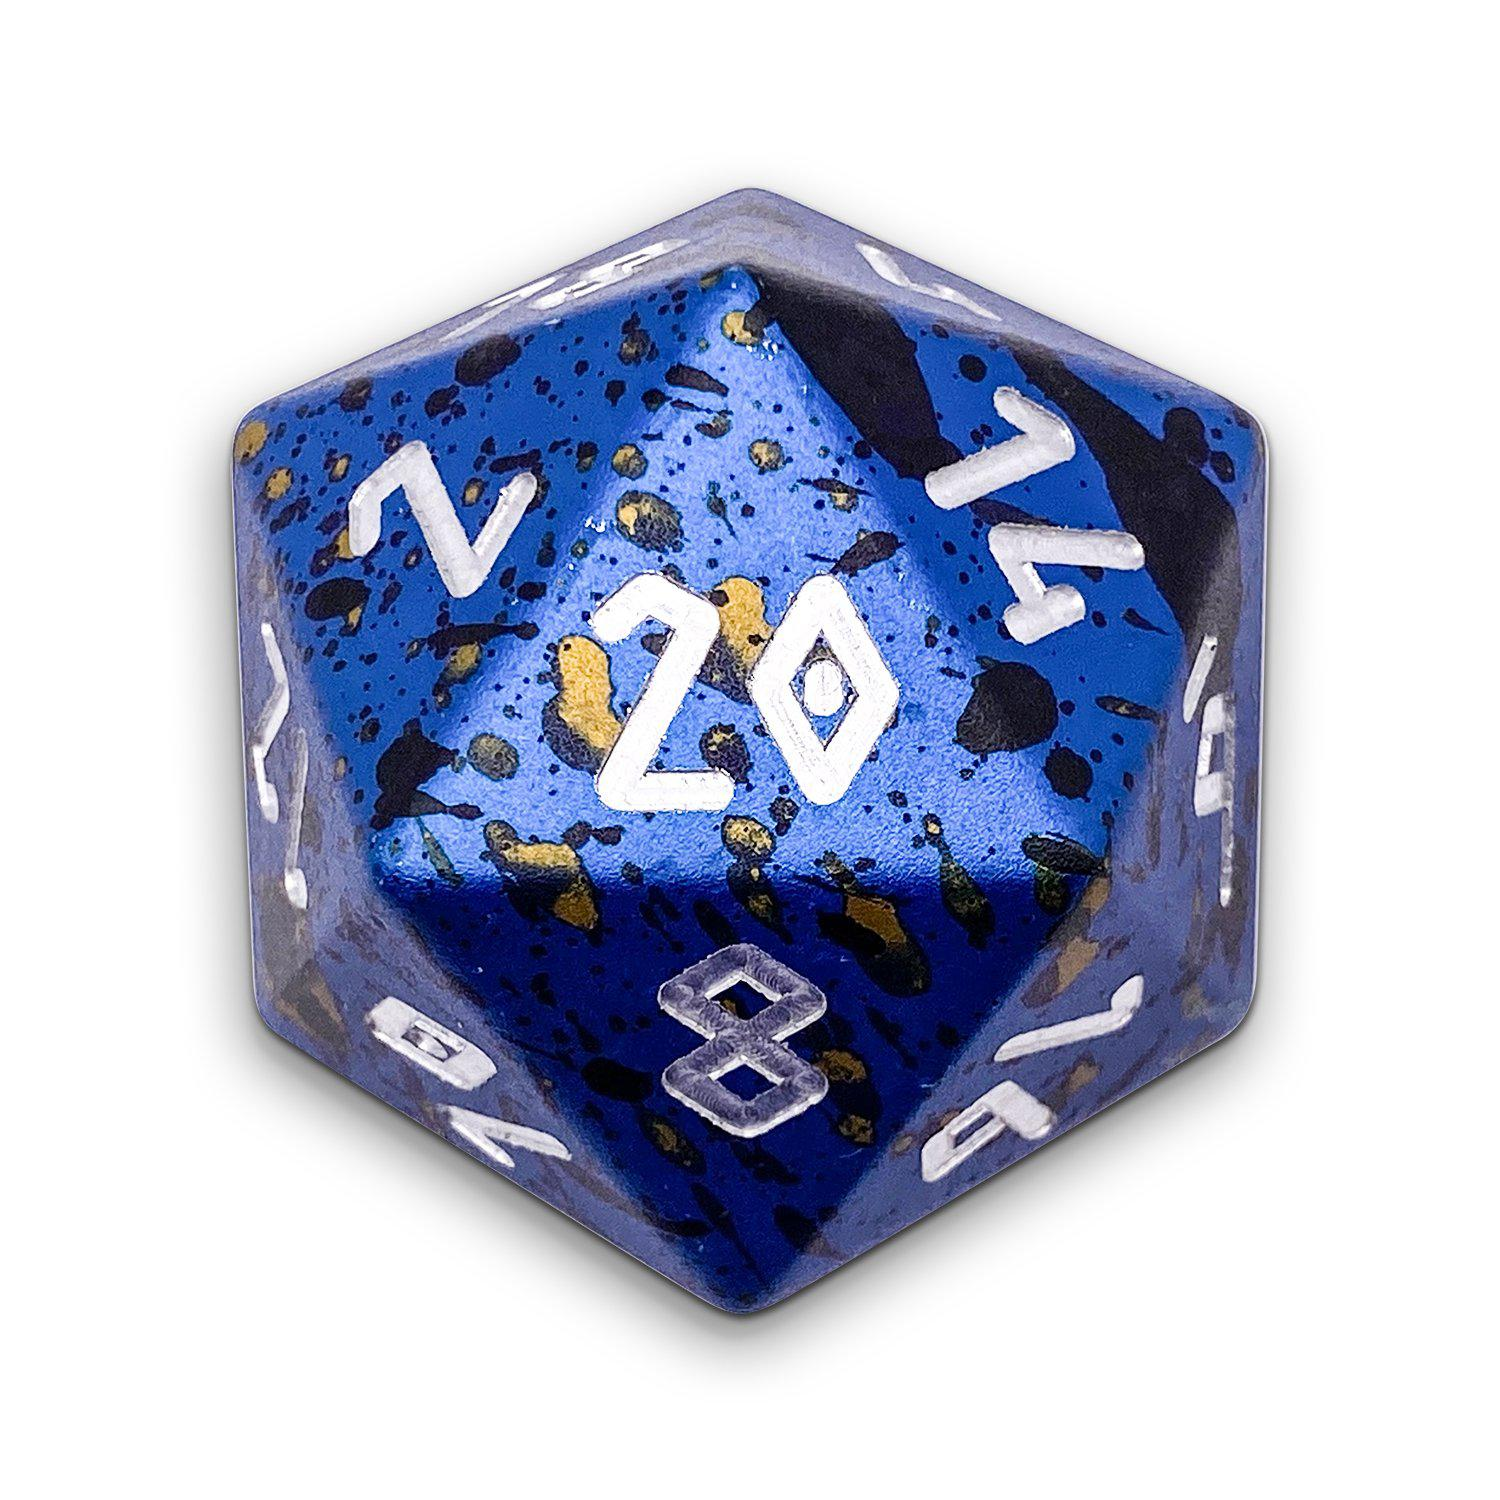 Assassins Blade - Wondrous Boulder® 55mm D20 6063 Aircraft Grade Aluminum Metal Die